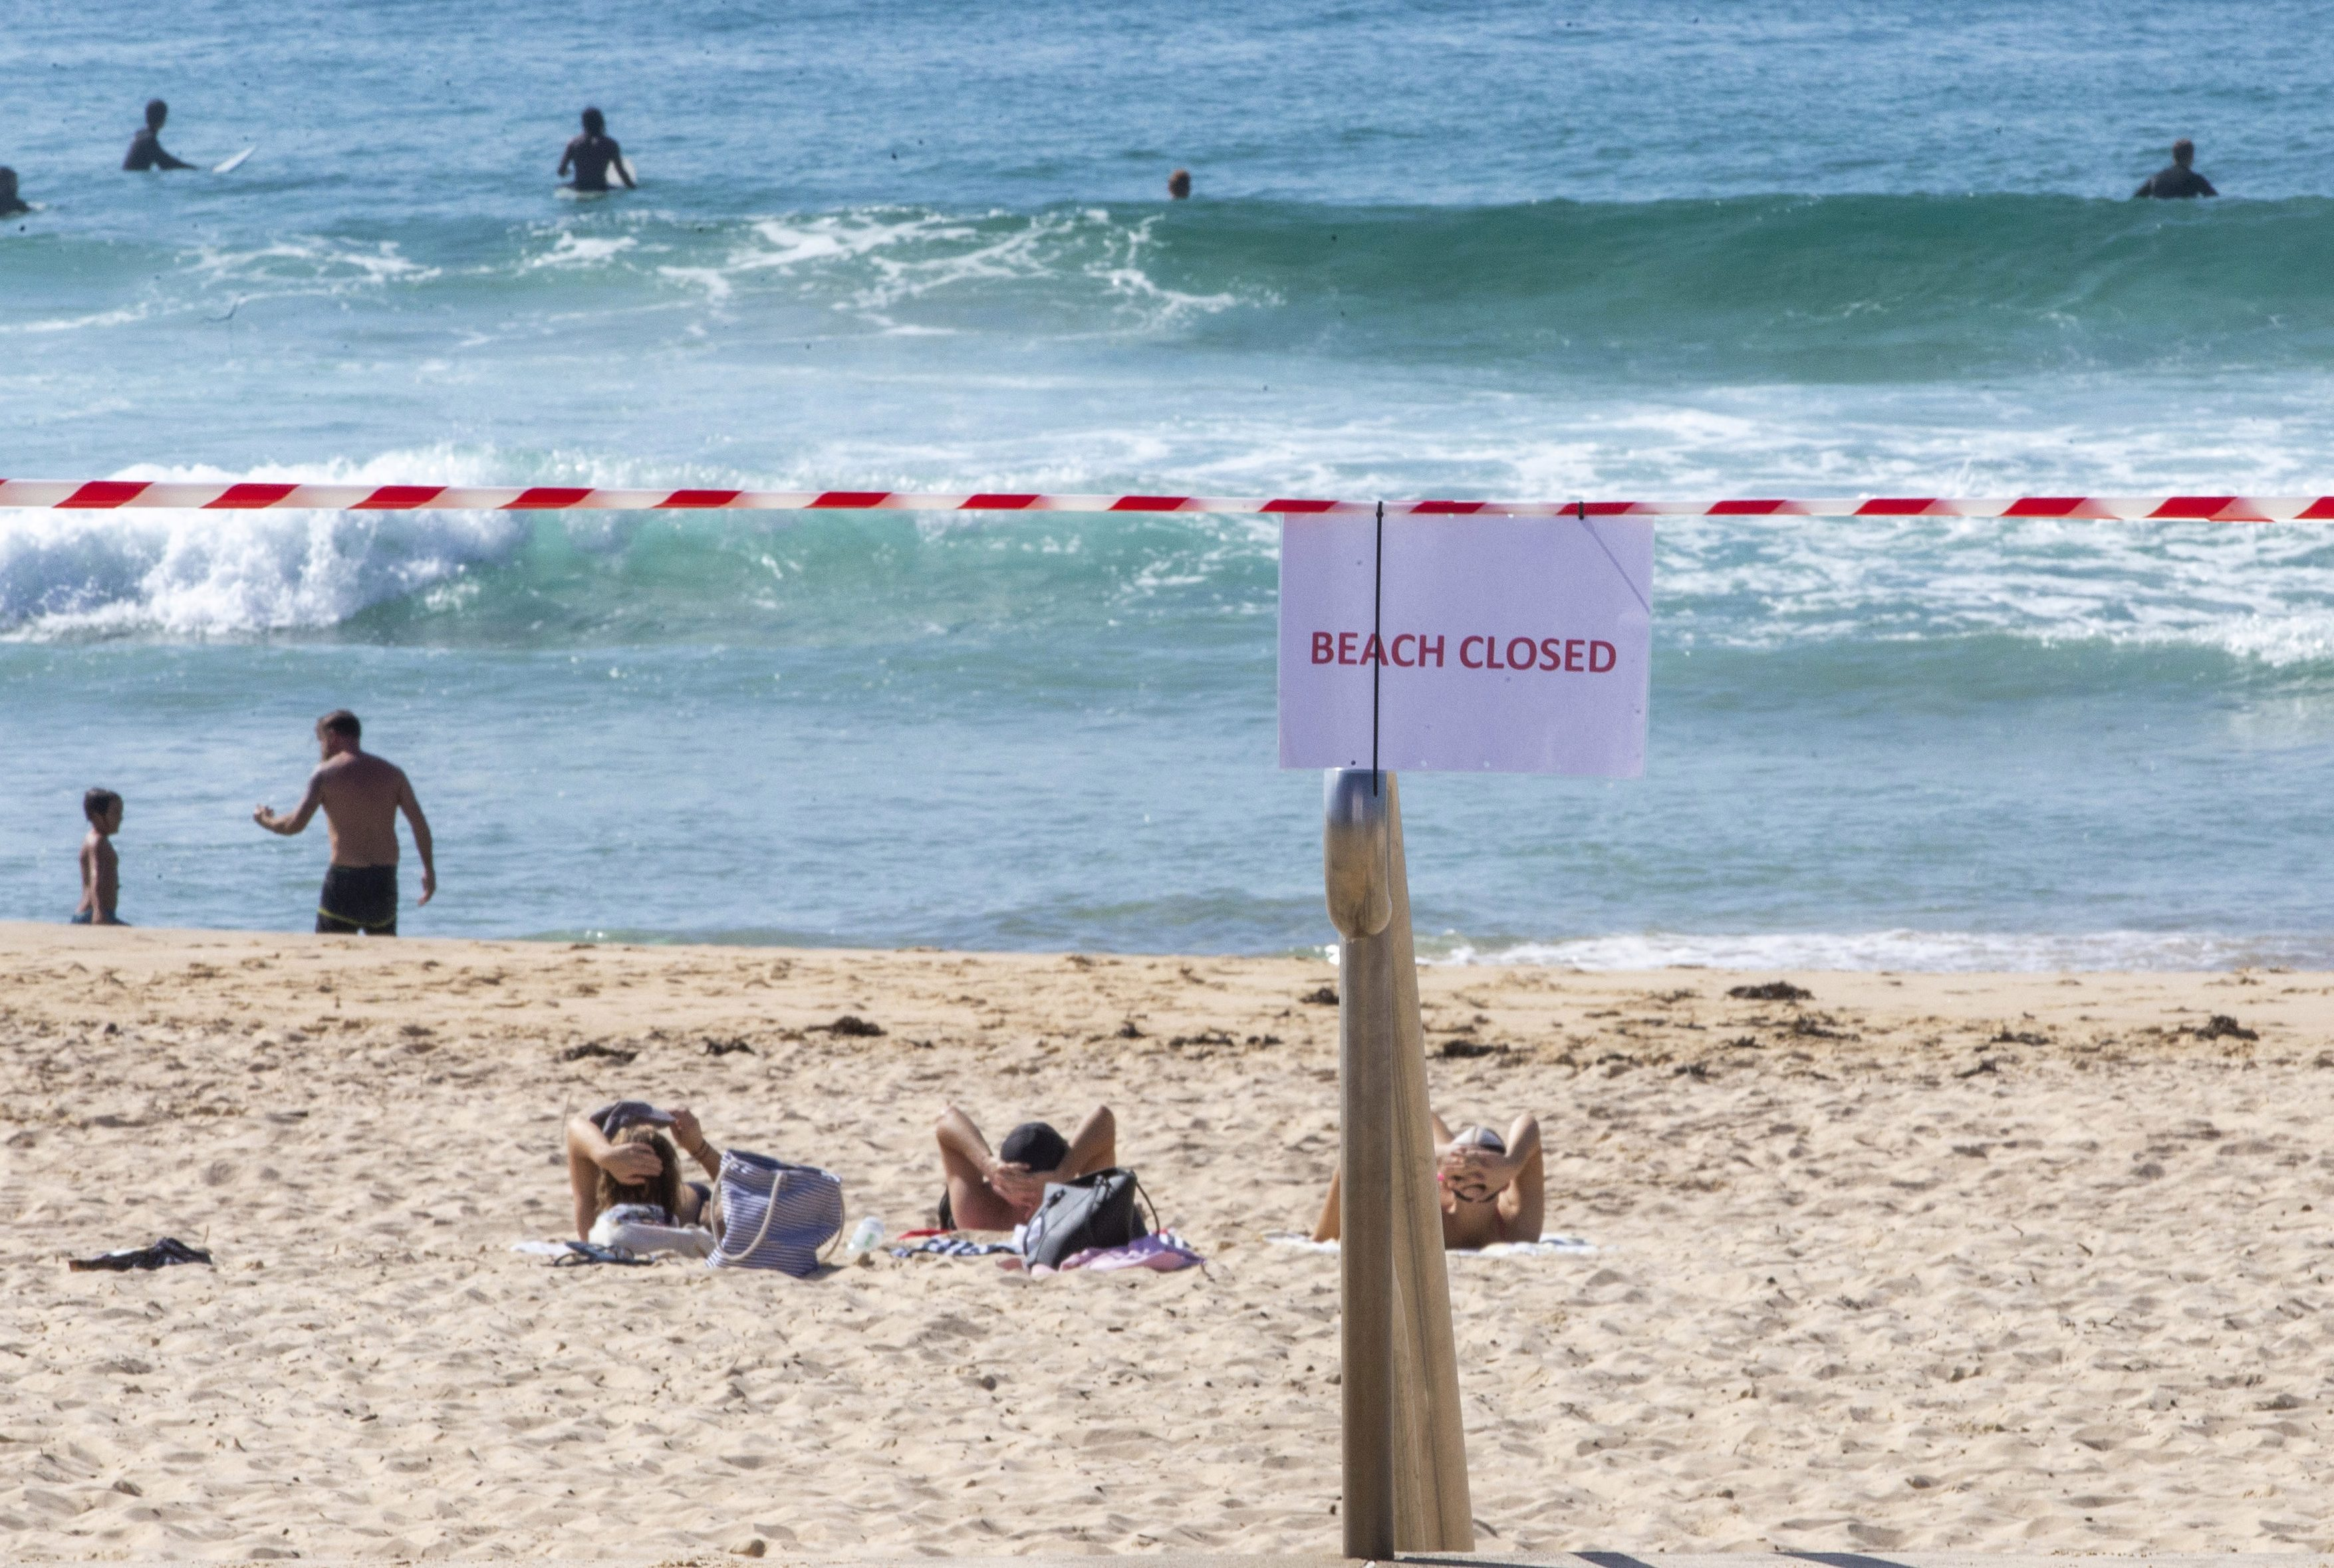 A closed sign is seen at Maroubra Beach